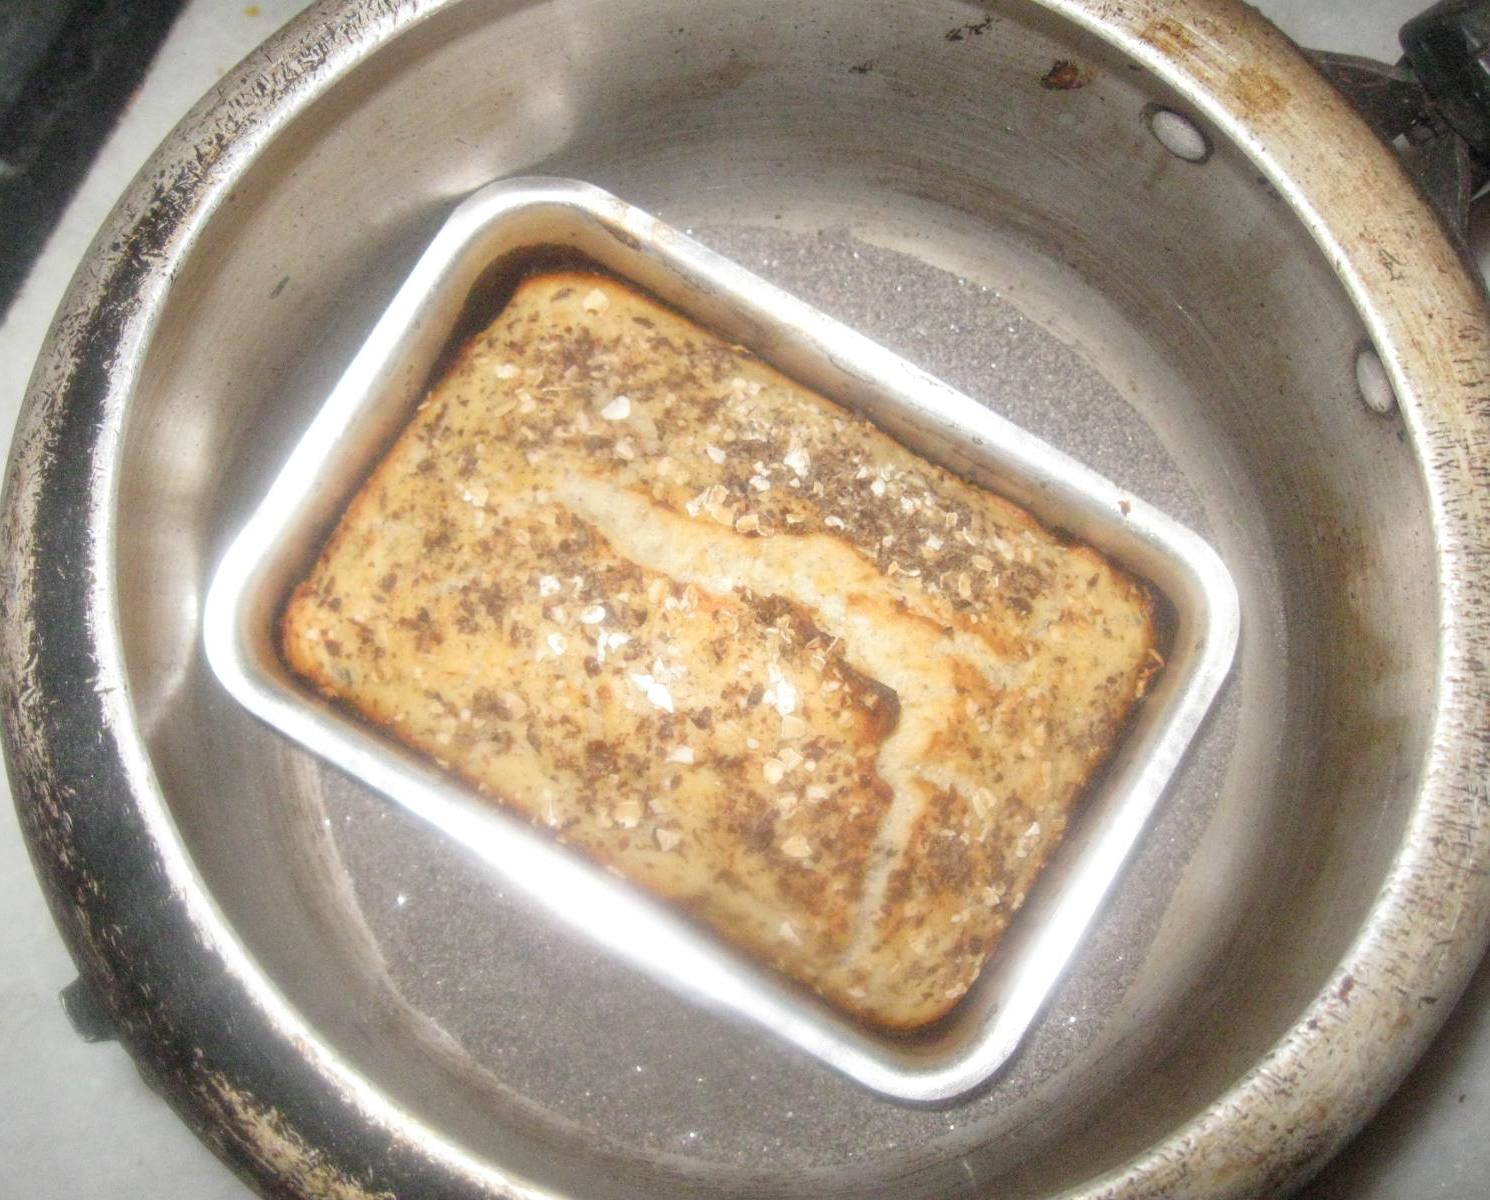 Multigrain bread in cooker